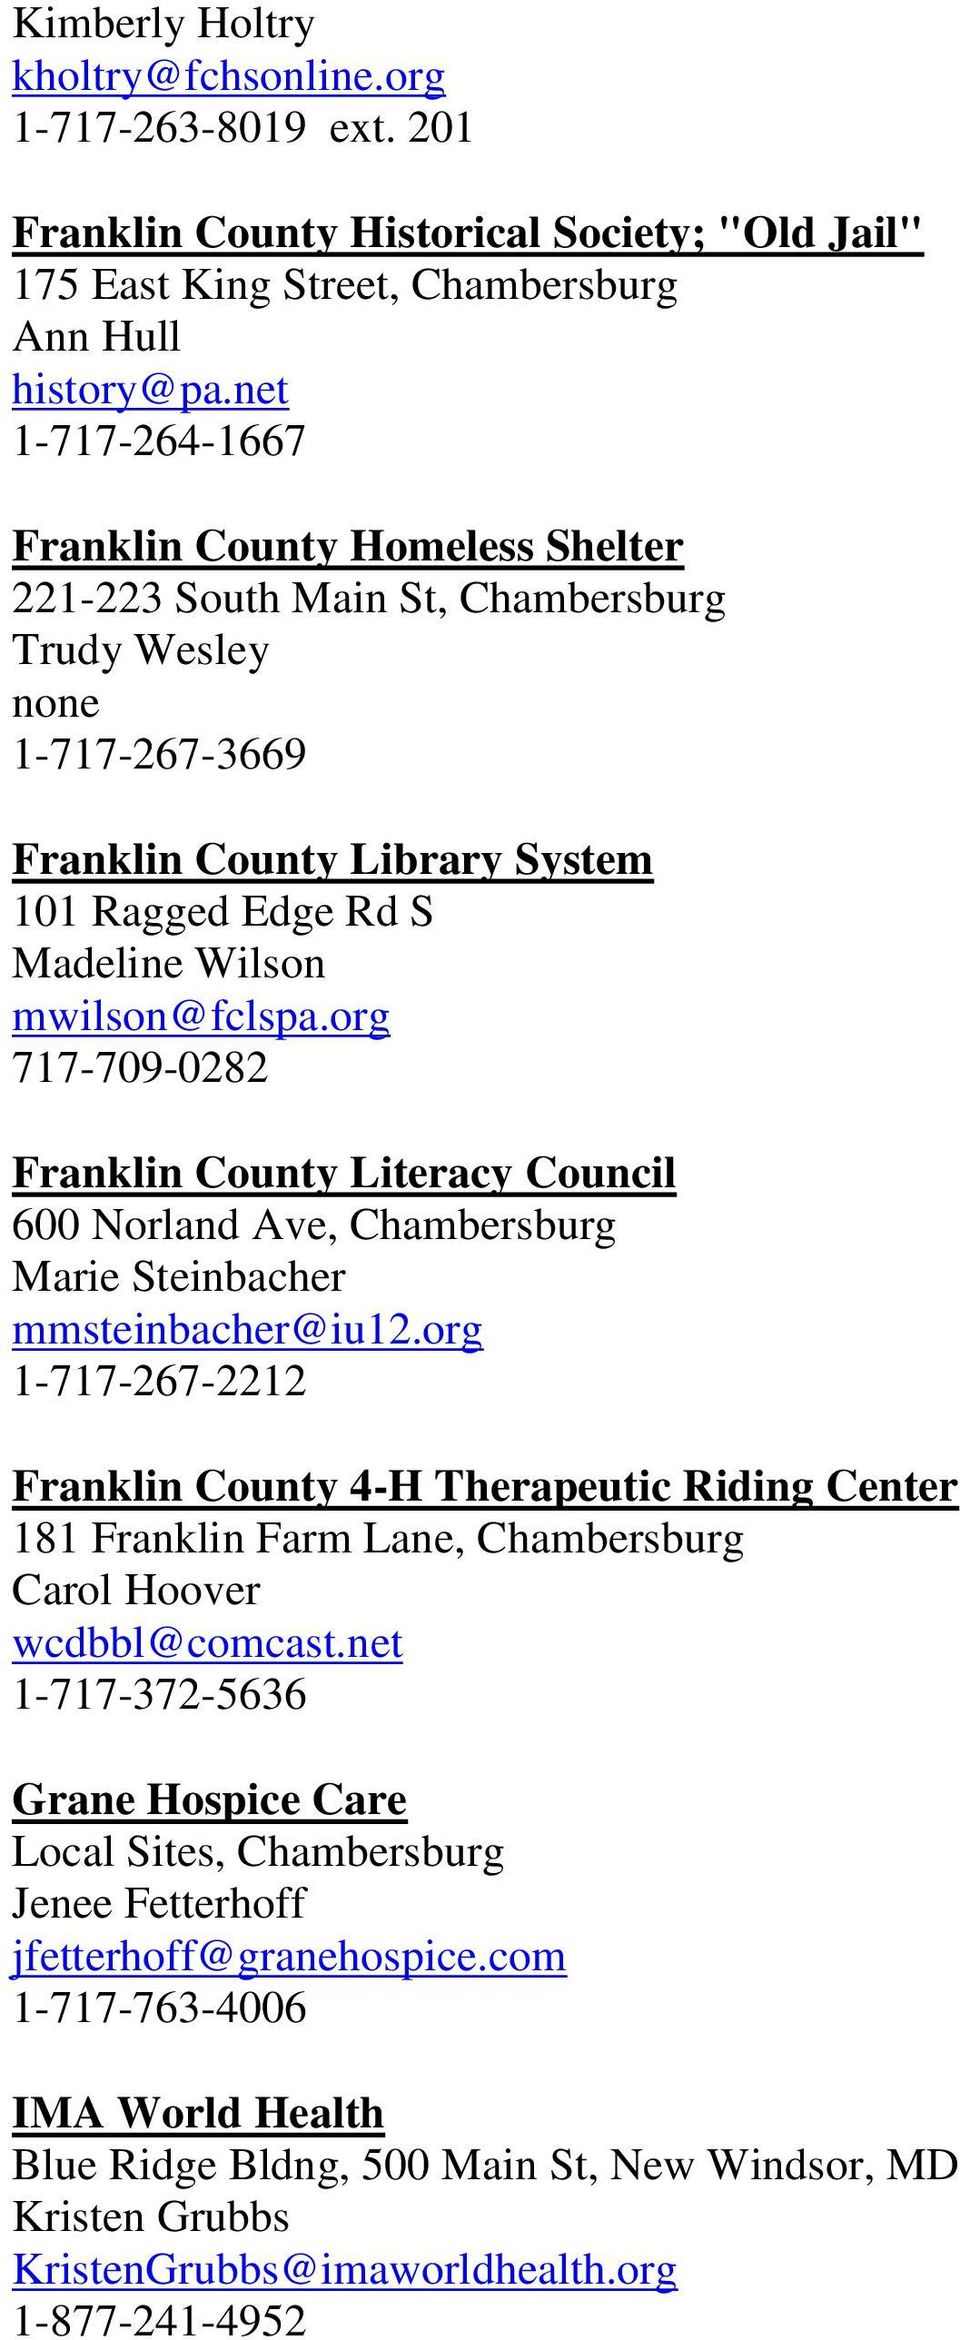 mwilson@fclspa.org 717-709-0282 Franklin County Literacy Council 600 Norland Ave, Chambersburg Marie Steinbacher mmsteinbacher@iu12.